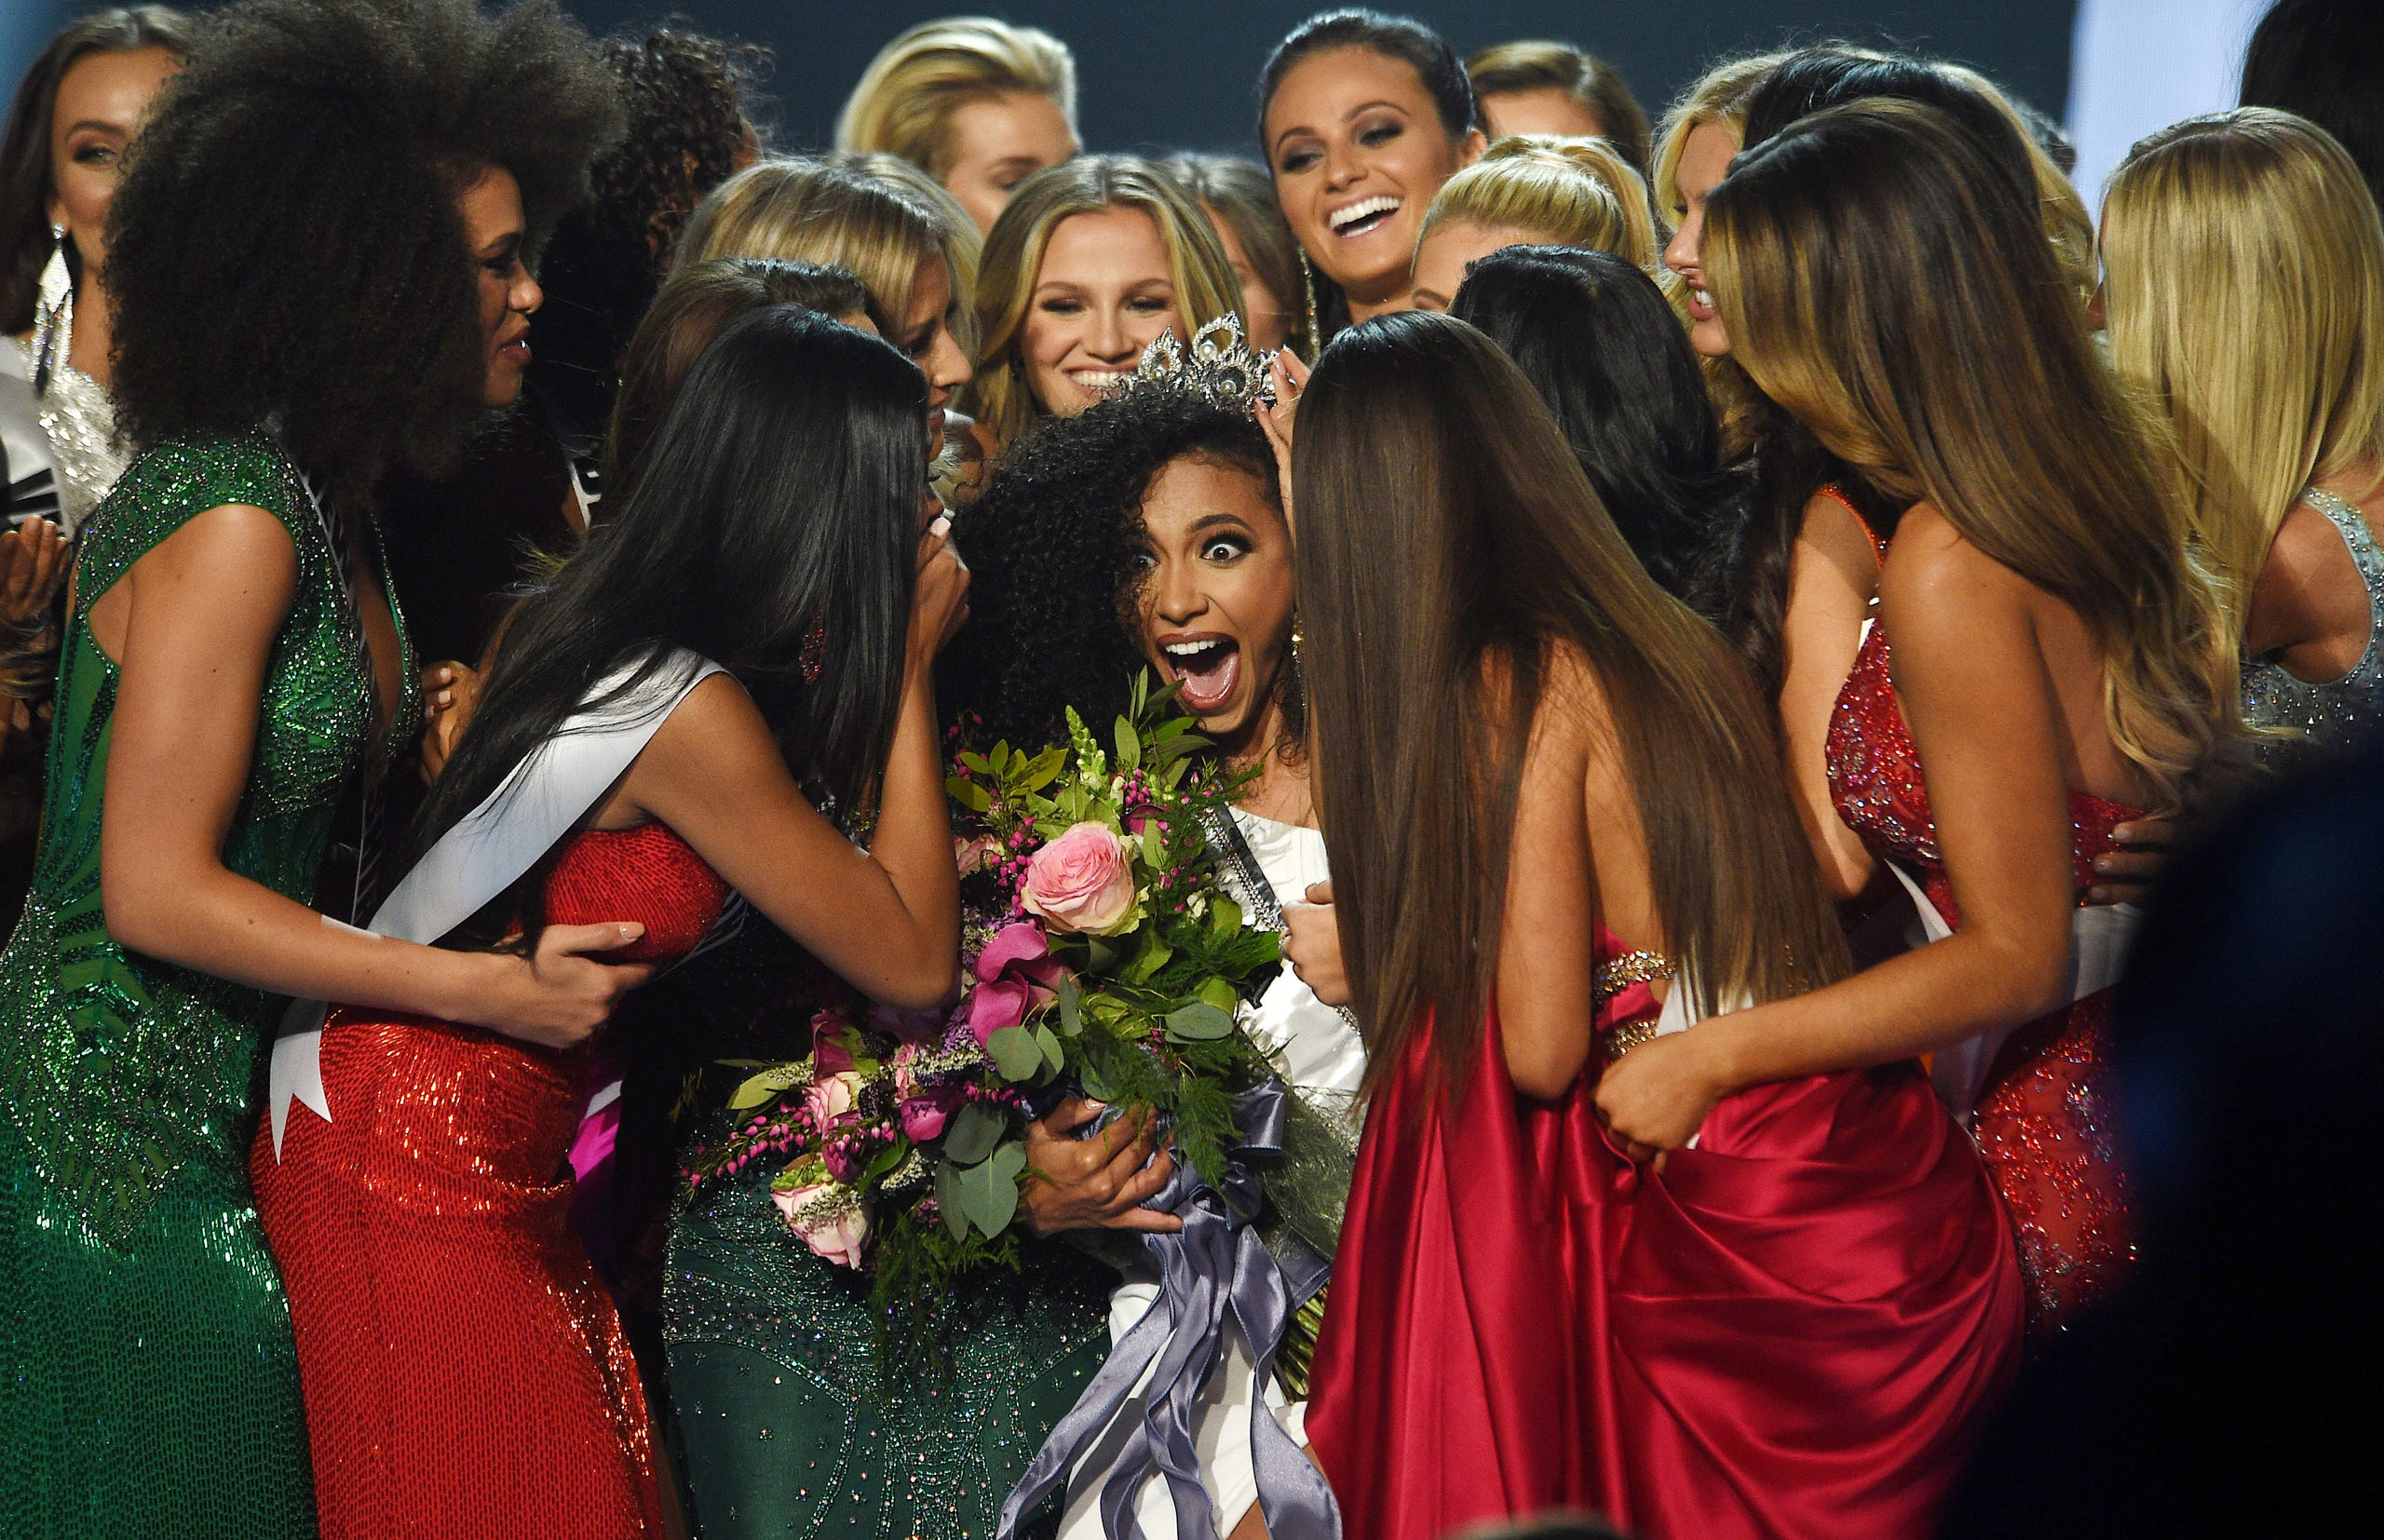 Miss North Carolina Chelsie Kryst, middle, is mobbed by fellow contestants after winning Miss USA 2019.